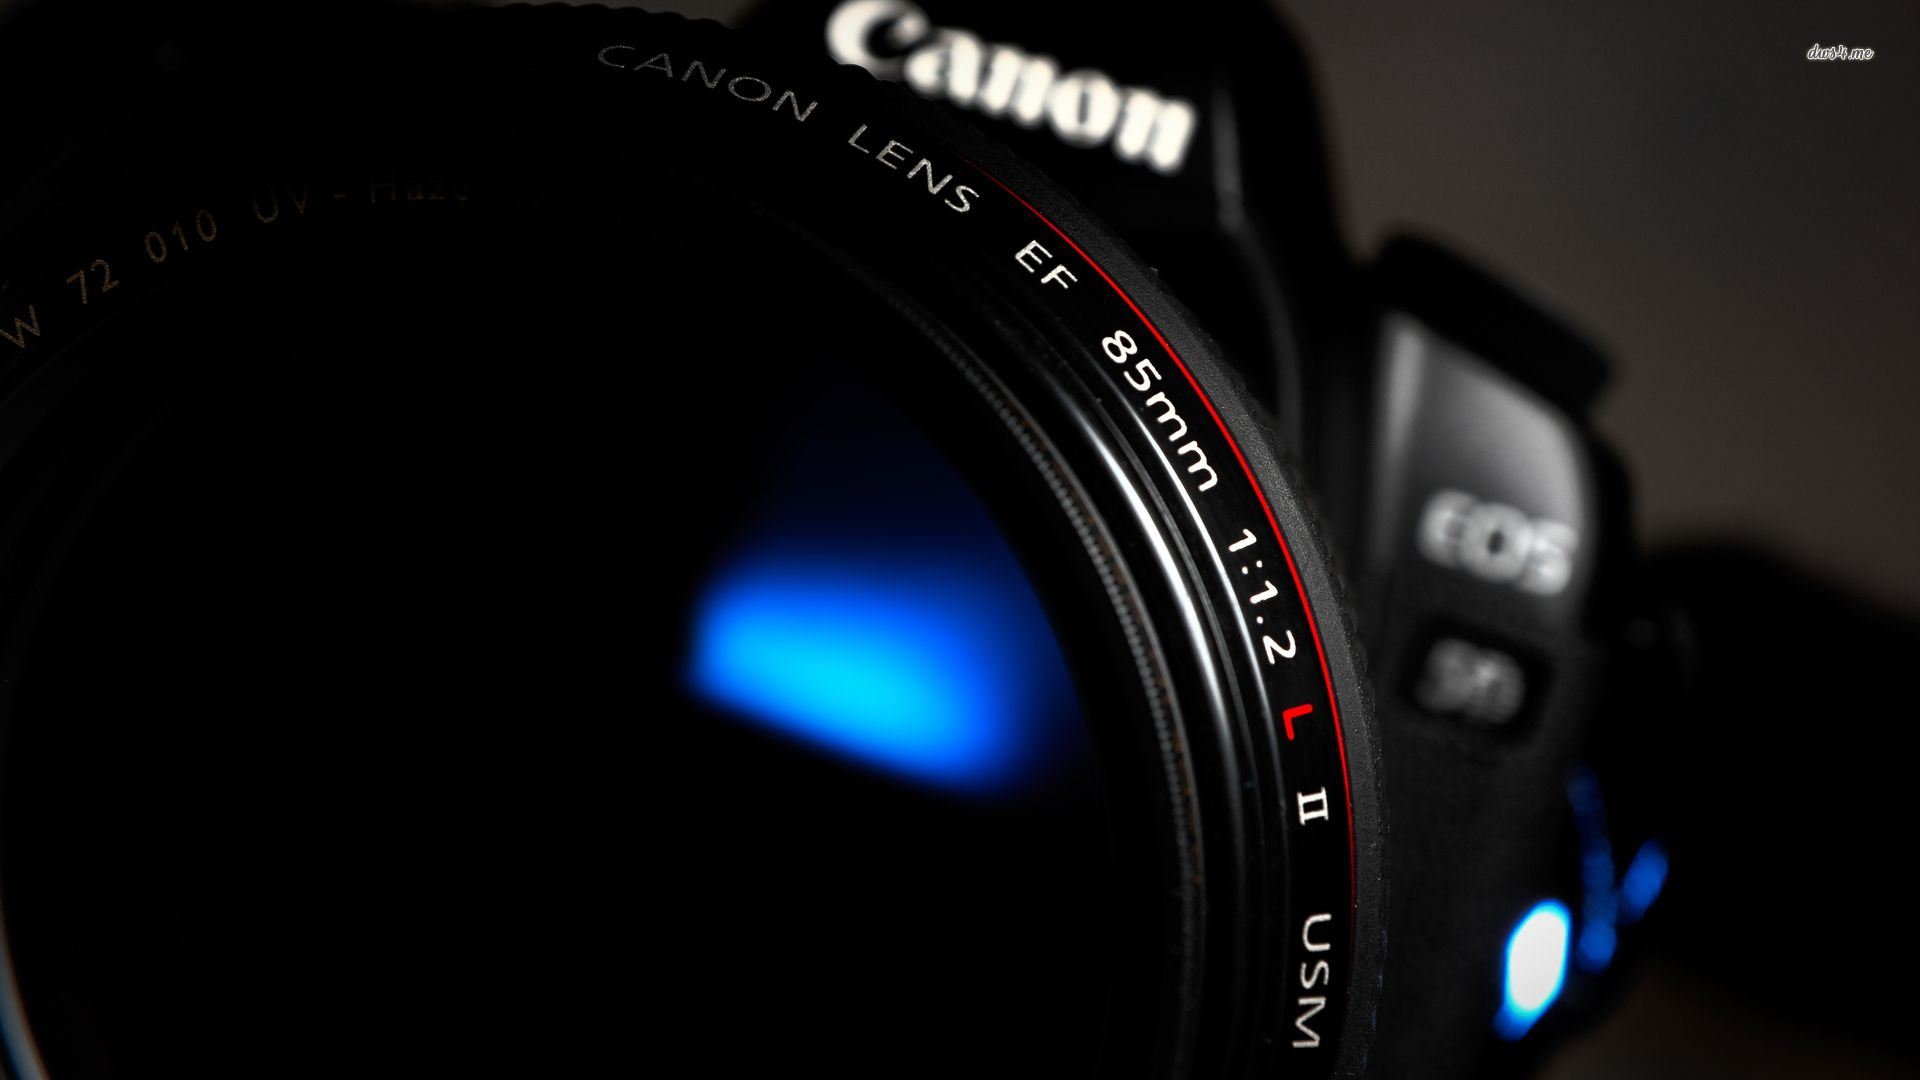 Canon-camera-wallpaper-dslr